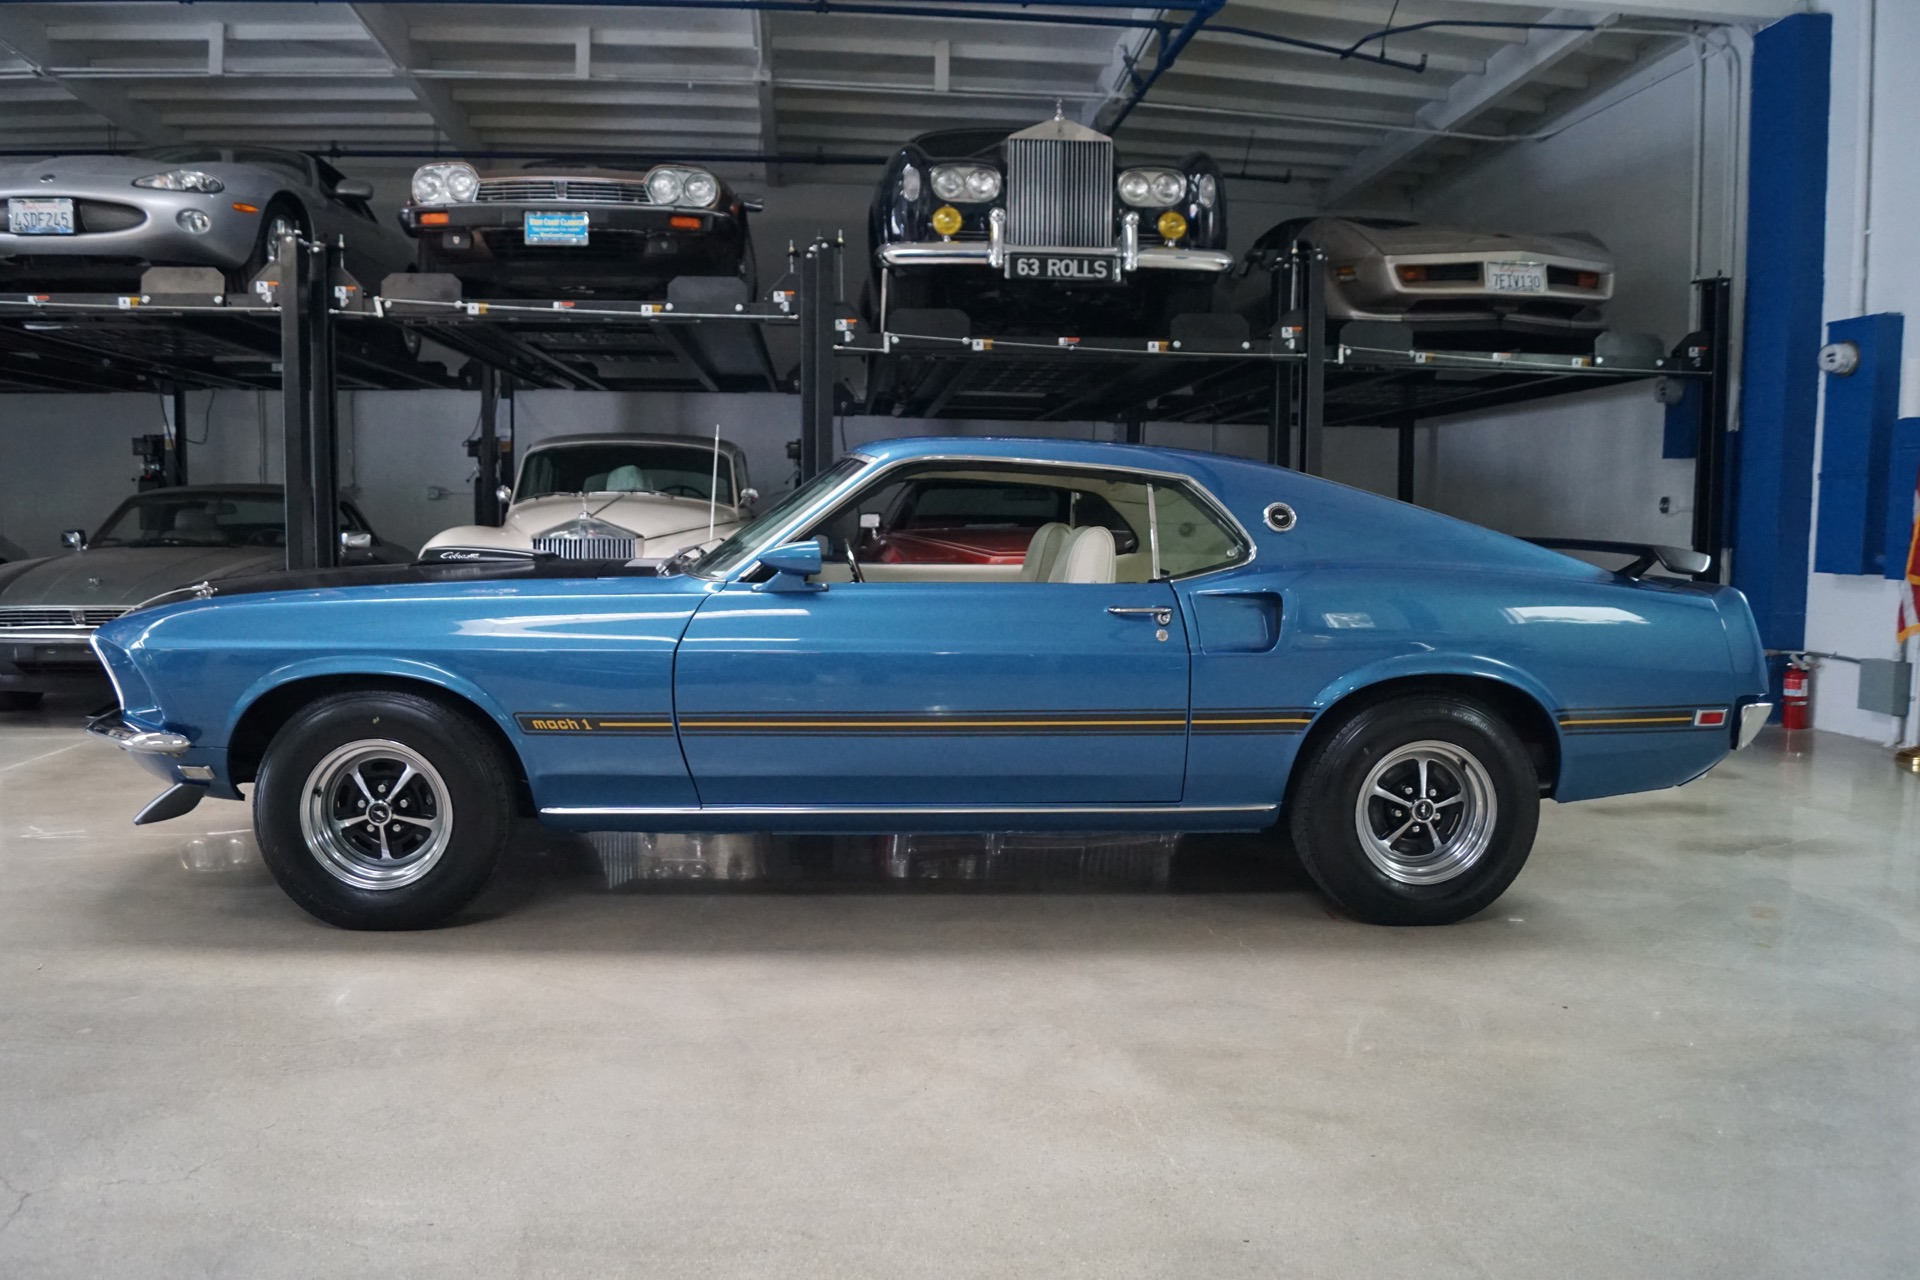 1969 Ford Mustang Mach 1 428 335hp V8 Cobra Jet Stock 953 For Sale Shaker Scoop Used Torrance Ca